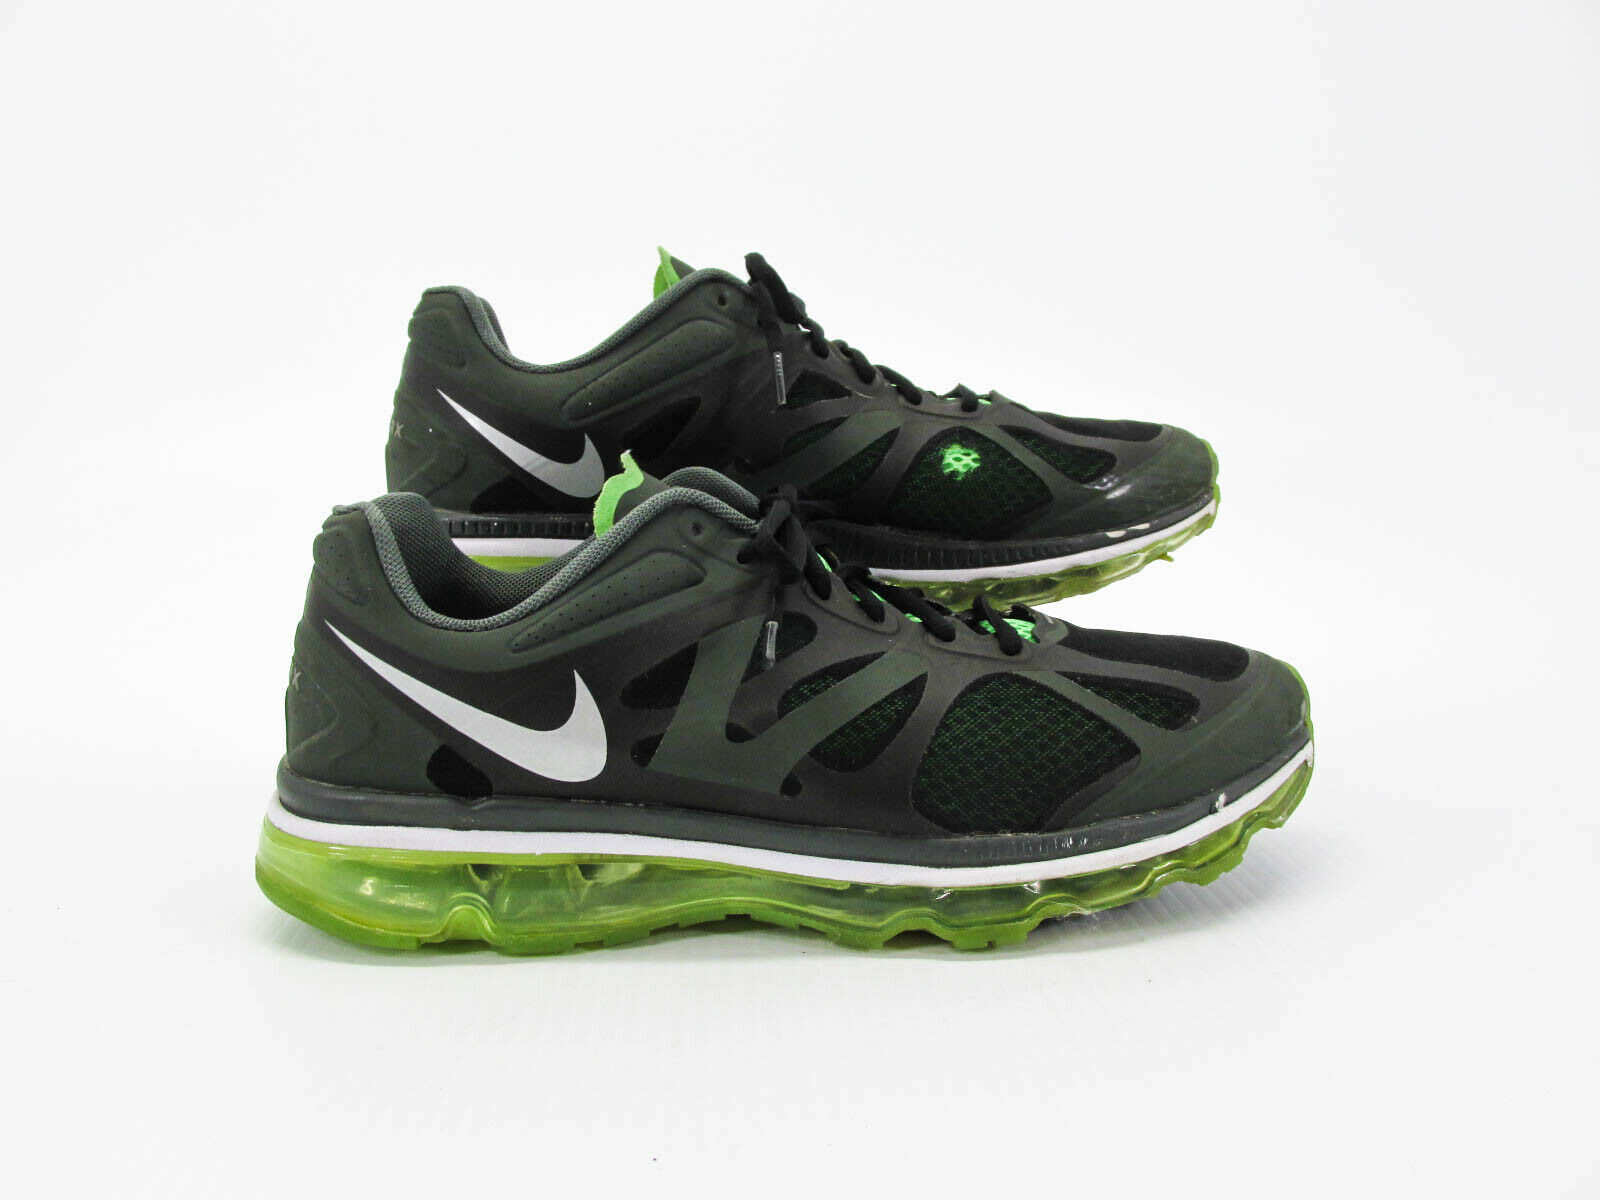 Nike Air Max Plus 2012 Men Athletic Running shoes Size 12M Pre Owned HJ